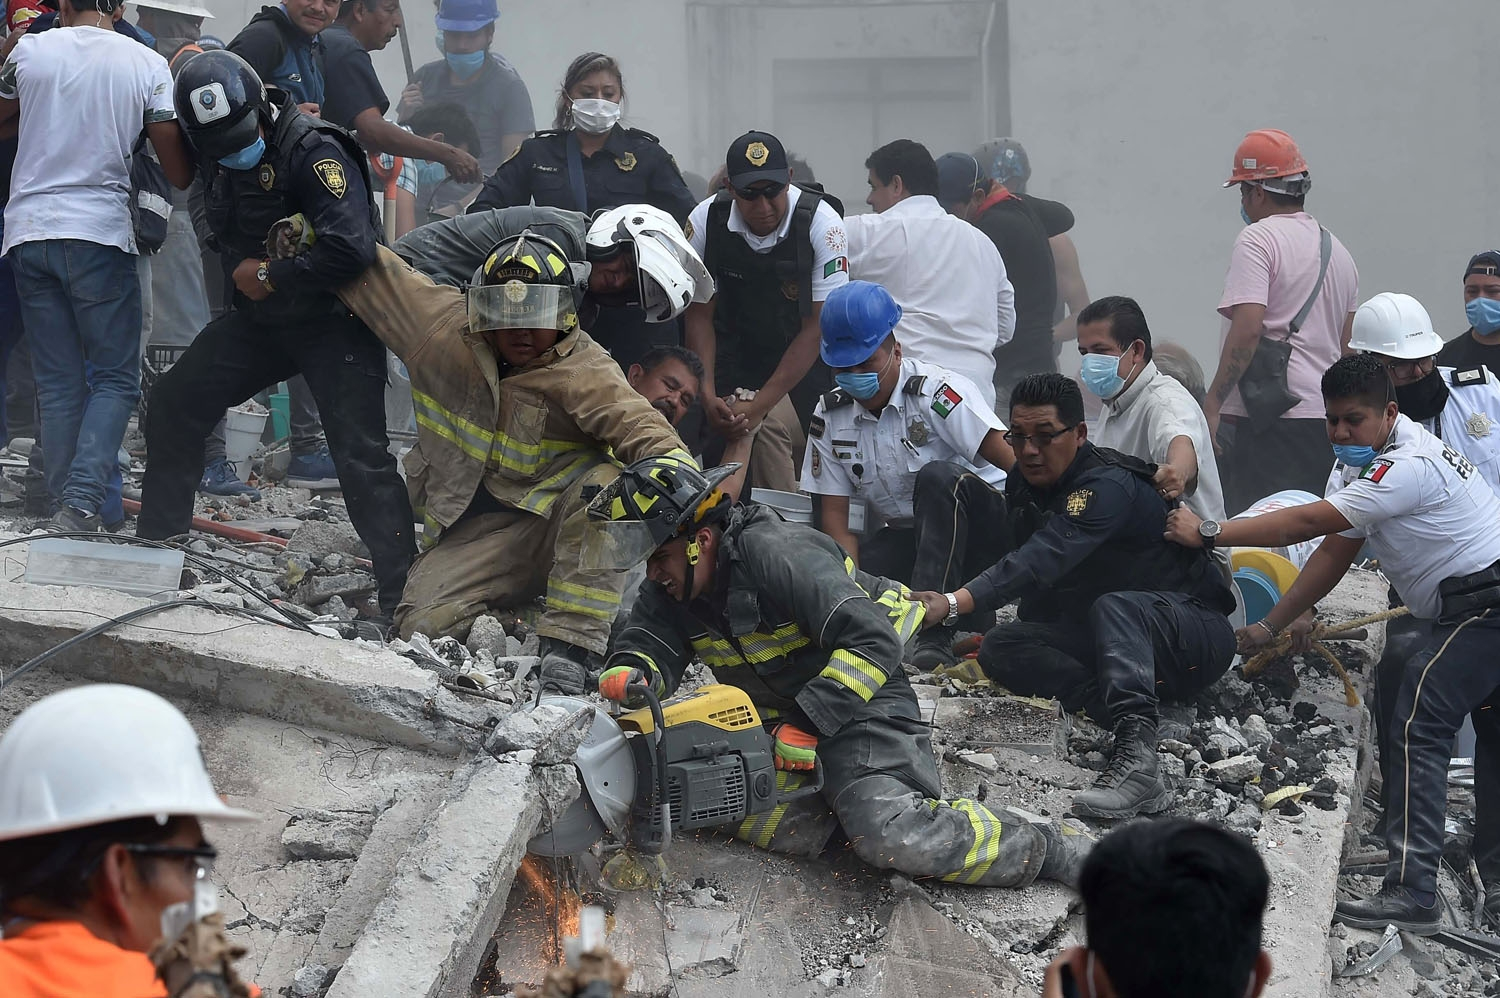 Rescuers, firefighters, policemen, soldiers and volunteers desperately remove rubble and debris from a flattened building in search of survivors after a powerful quake in Mexico City on September 19, 2017.